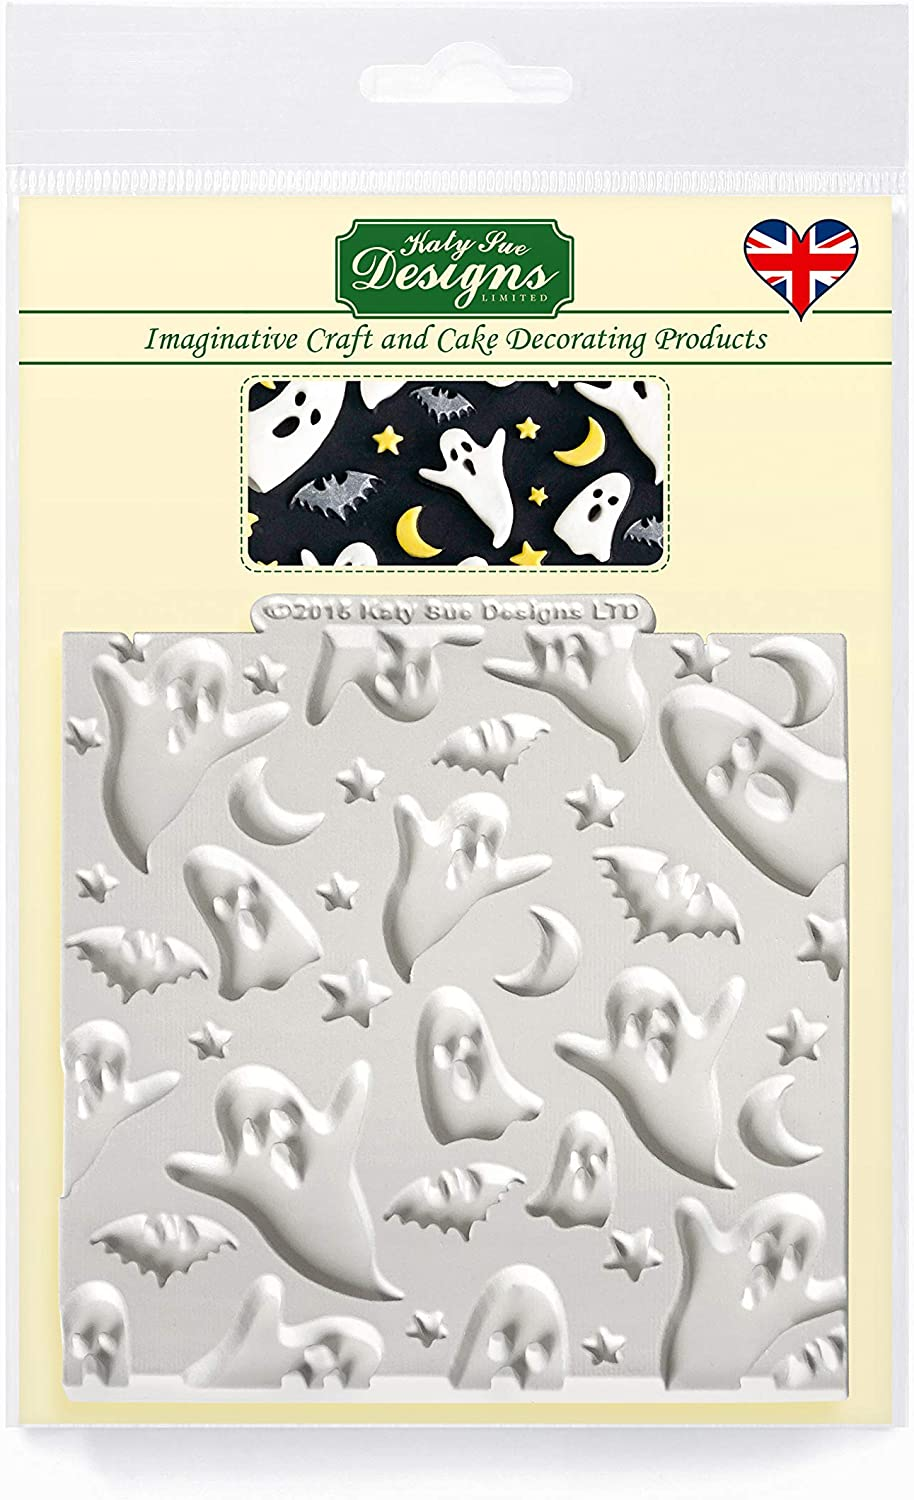 Ghosts Silicone Mold for Cake Decorating, Crafts, Cupcakes, Sugarcraft, Candies, Chocolate, Card Making and Clay, Food Safe Approved, Made in the UK